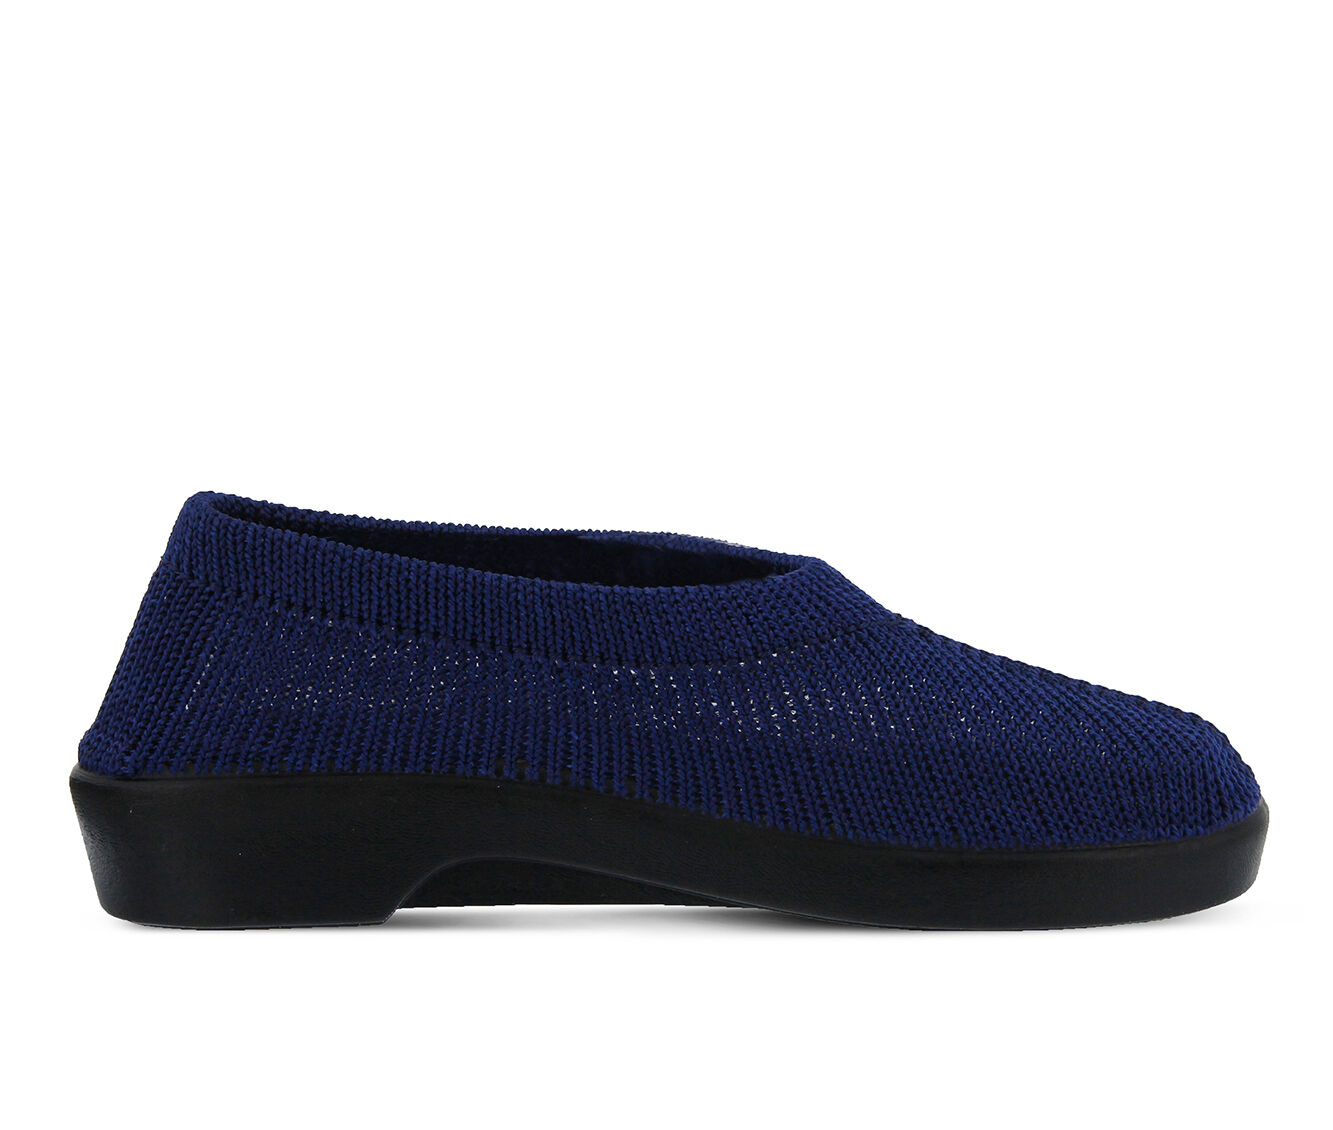 buy authentic new arrivals Women's SPRING STEP Tender Navy